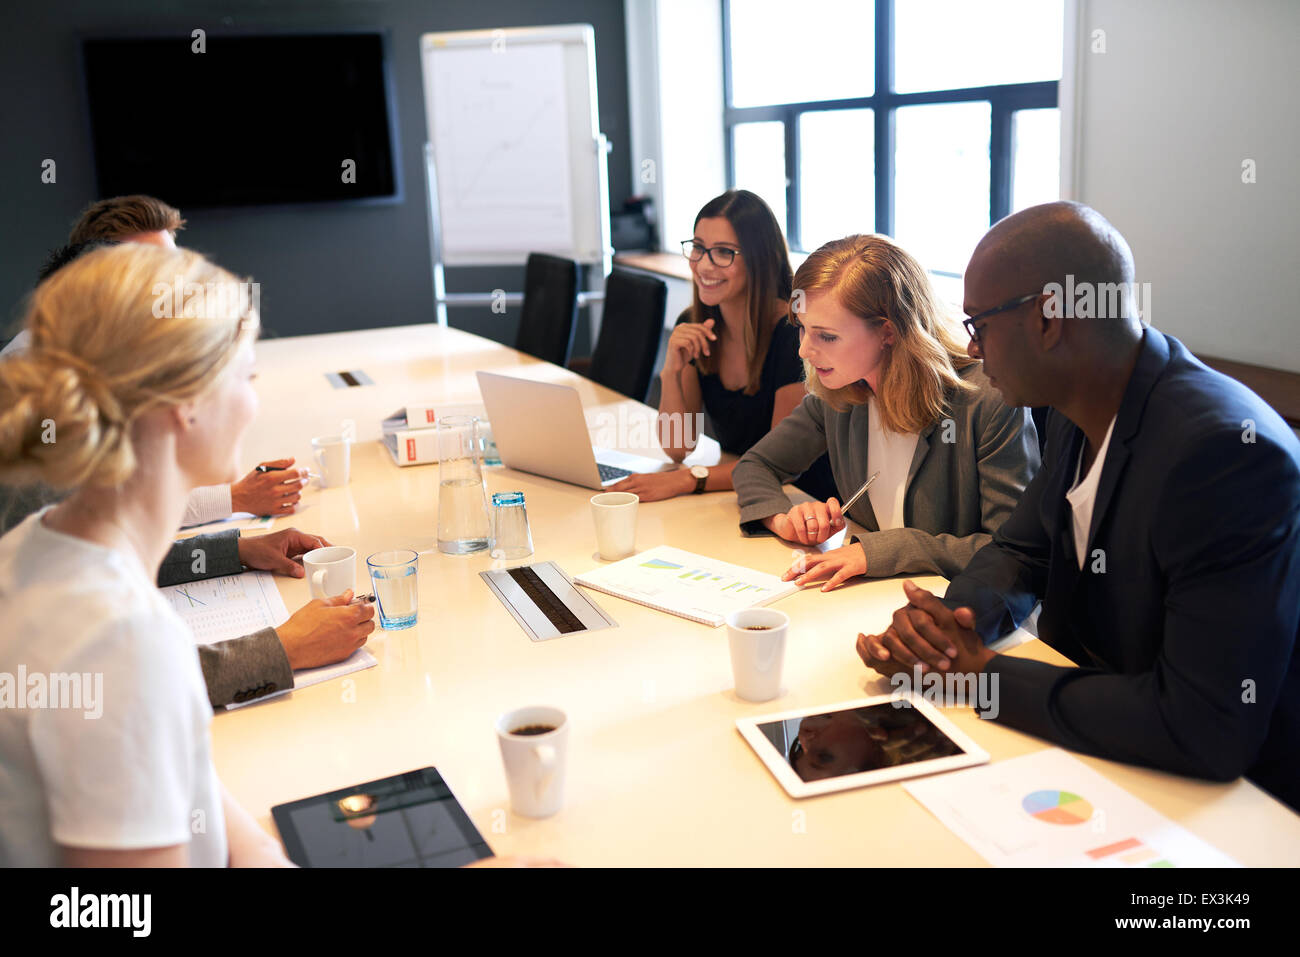 Group of young executives holding a meeting in a conference room - Stock Image